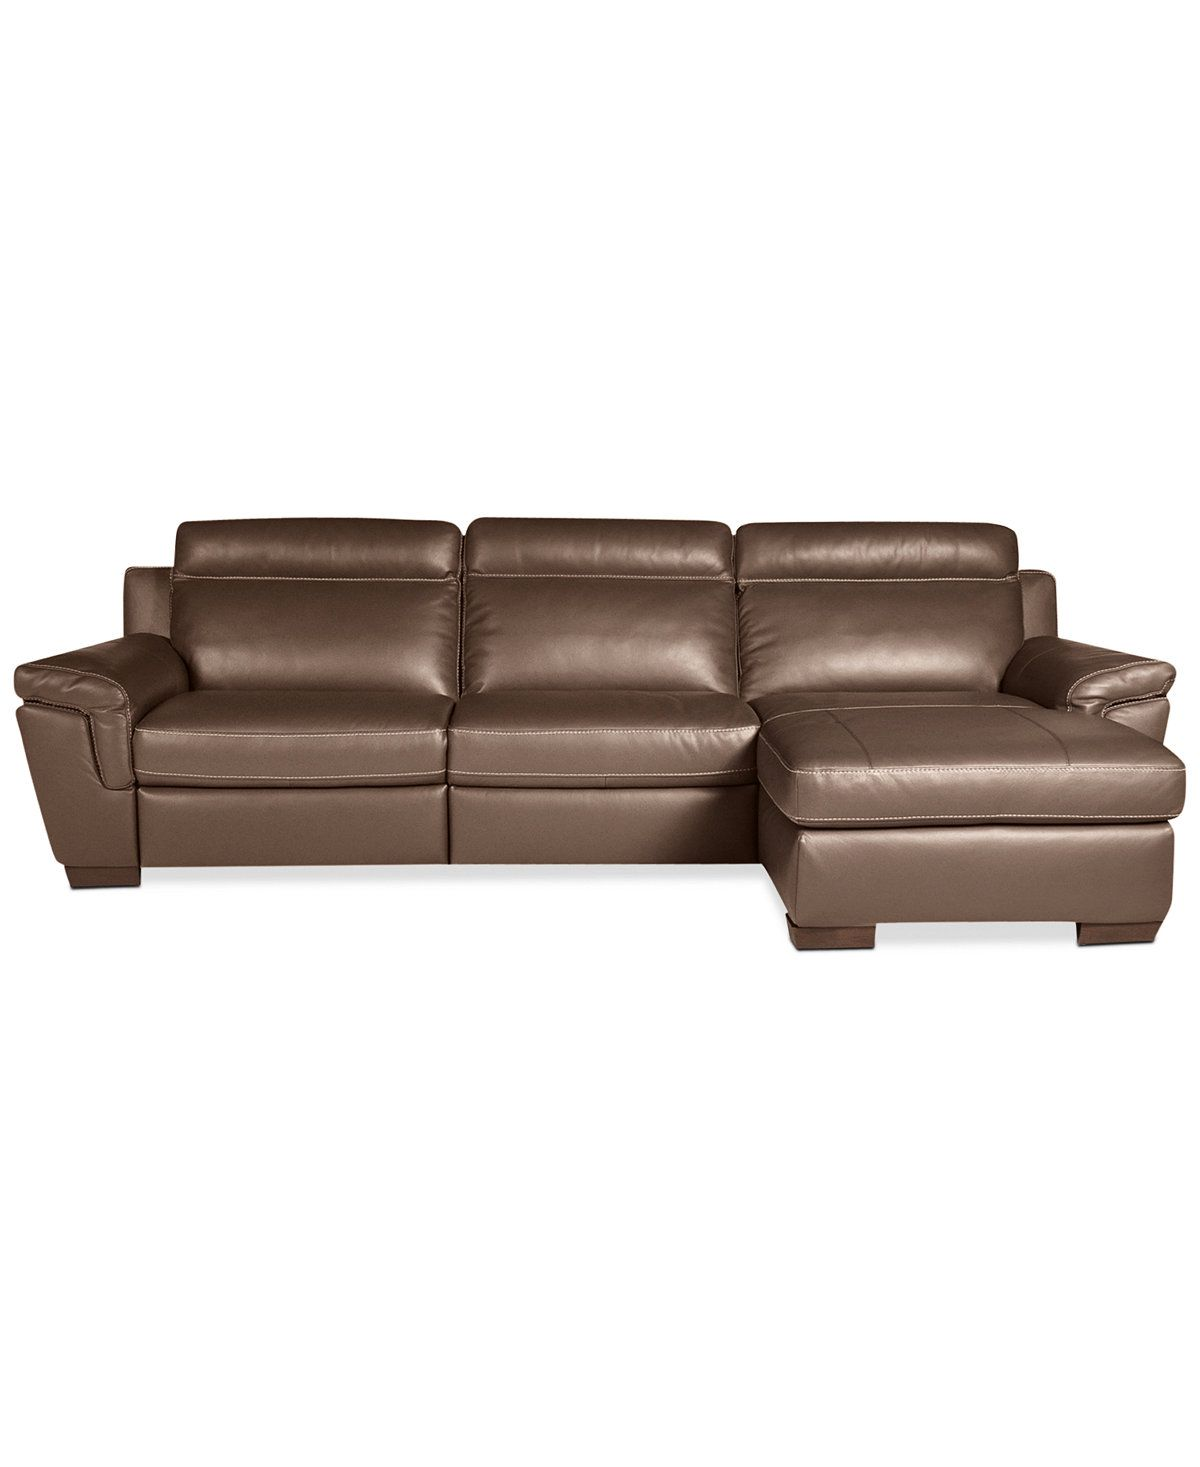 Julius 3 Pc Leather Sectional Sofa With Chaise With 2 Power